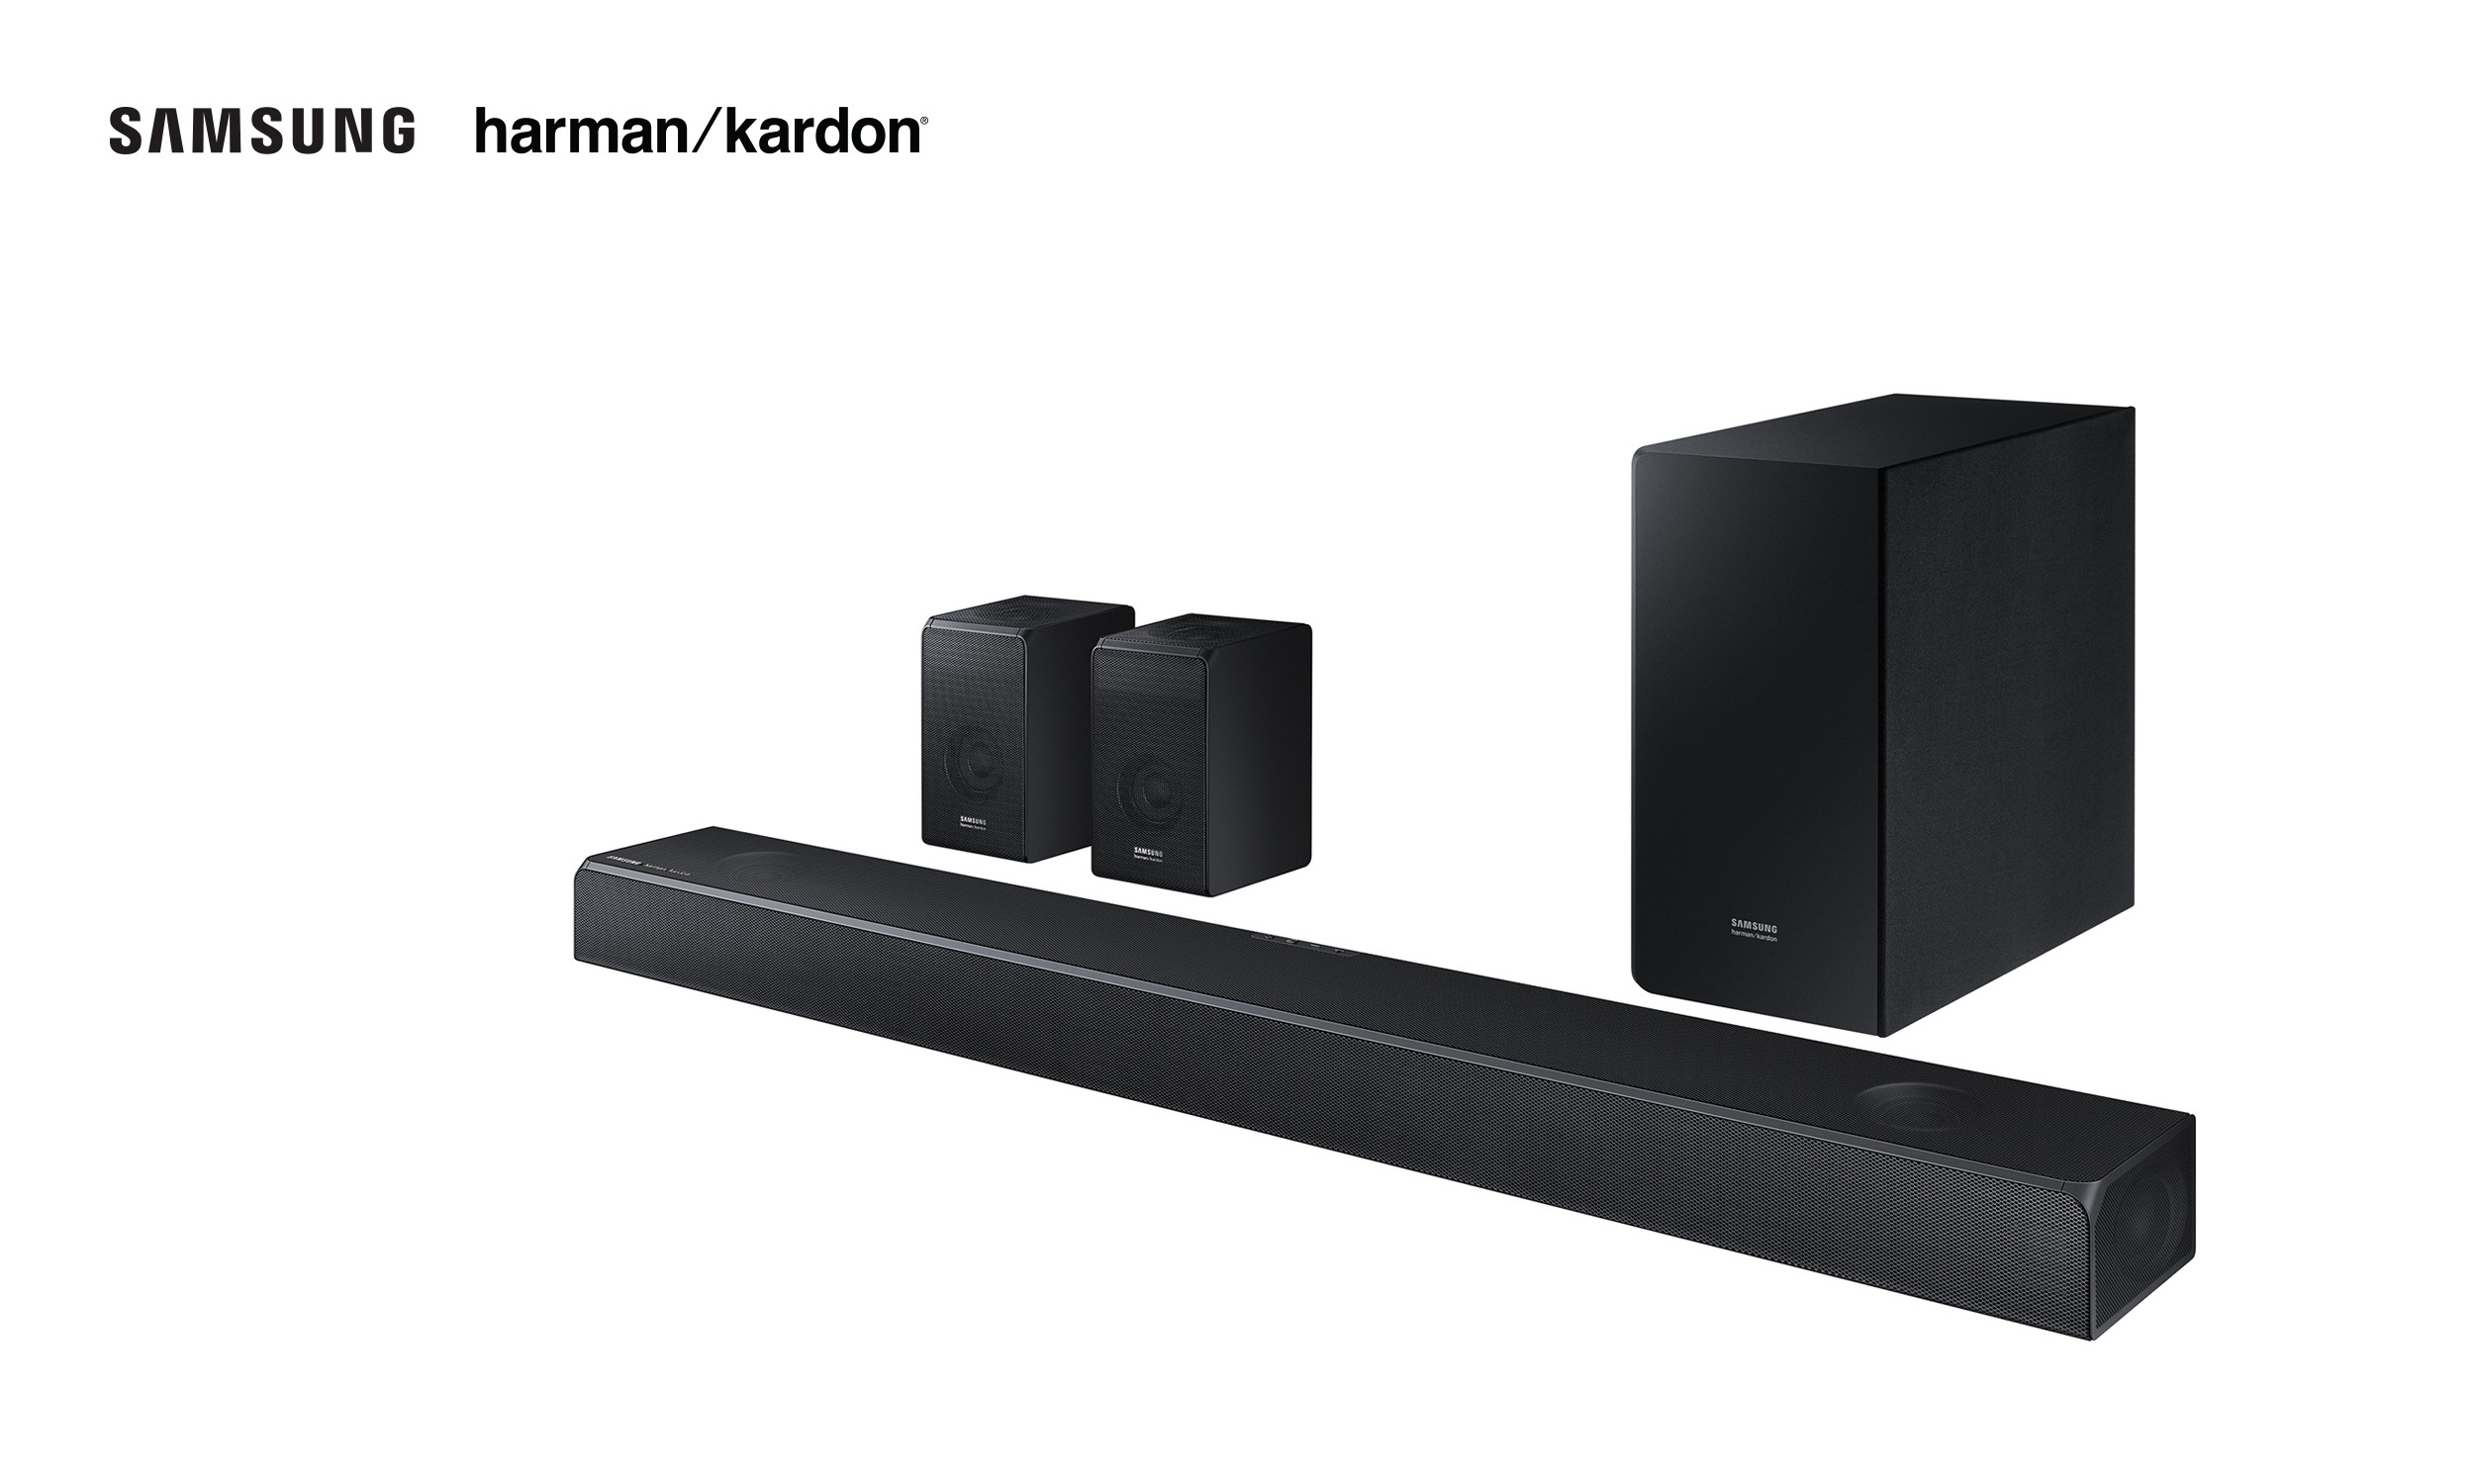 A Week With Samsung's HW-N950 Soundbar - Dans Media Digest